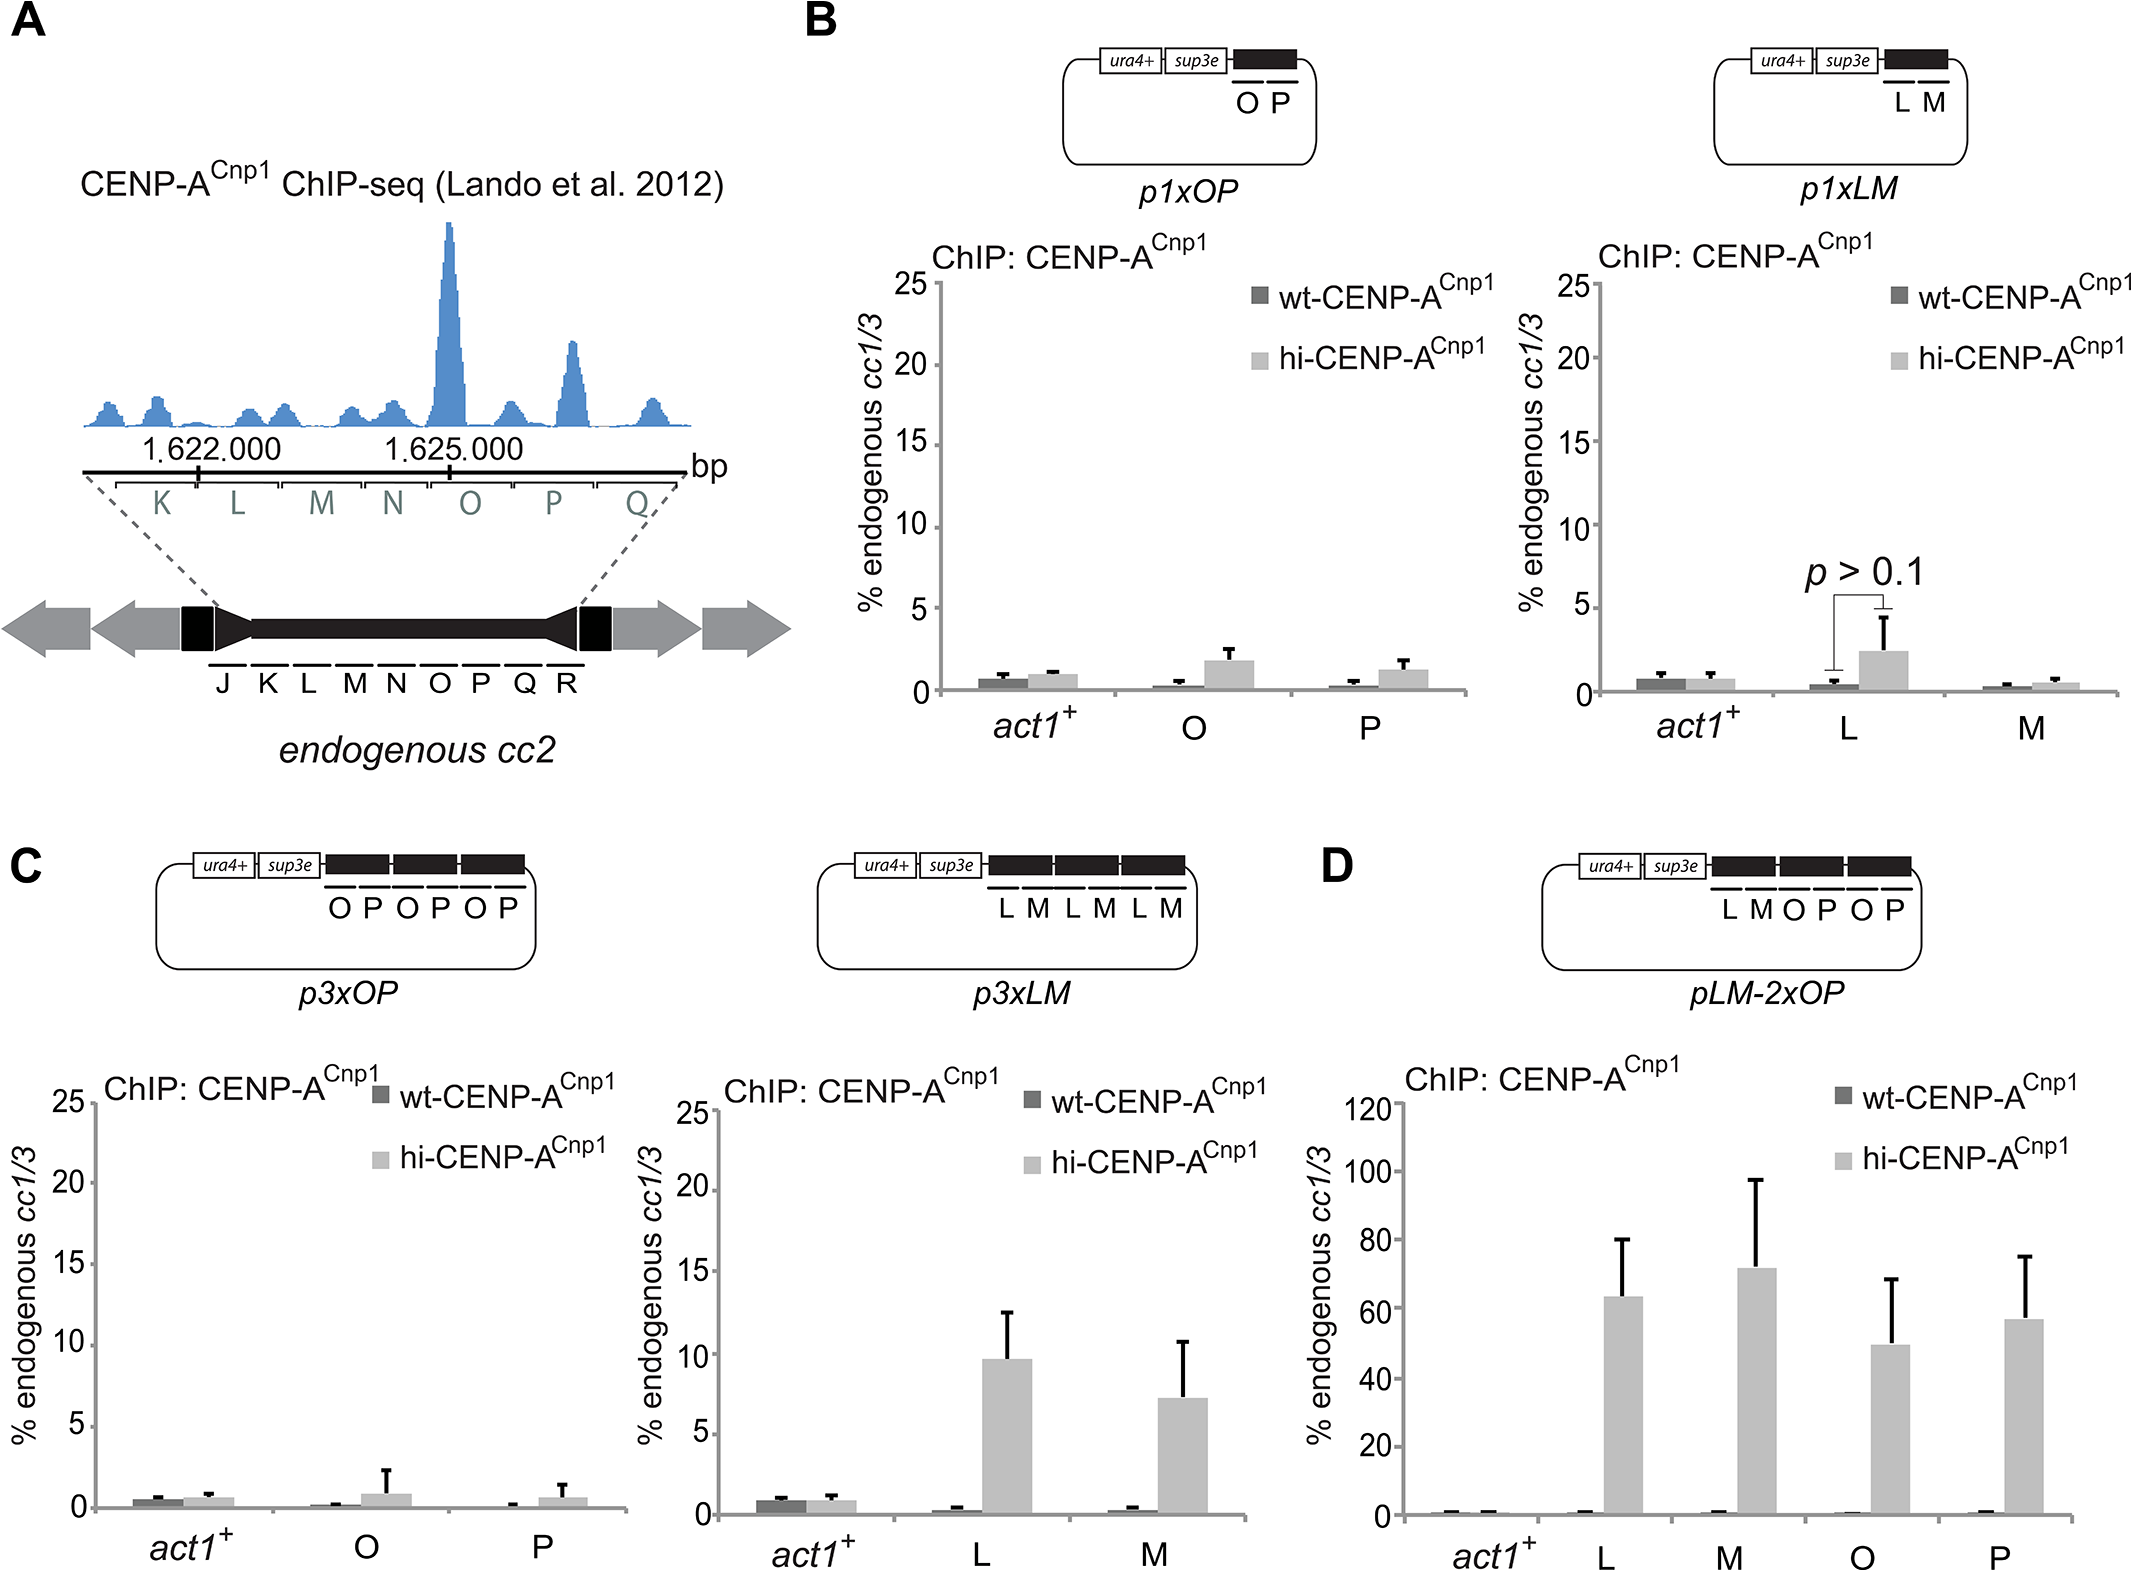 A 2 kb region of cc2 is sufficient to establish CENP-A<sup>Cnp1</sup> chromatin.